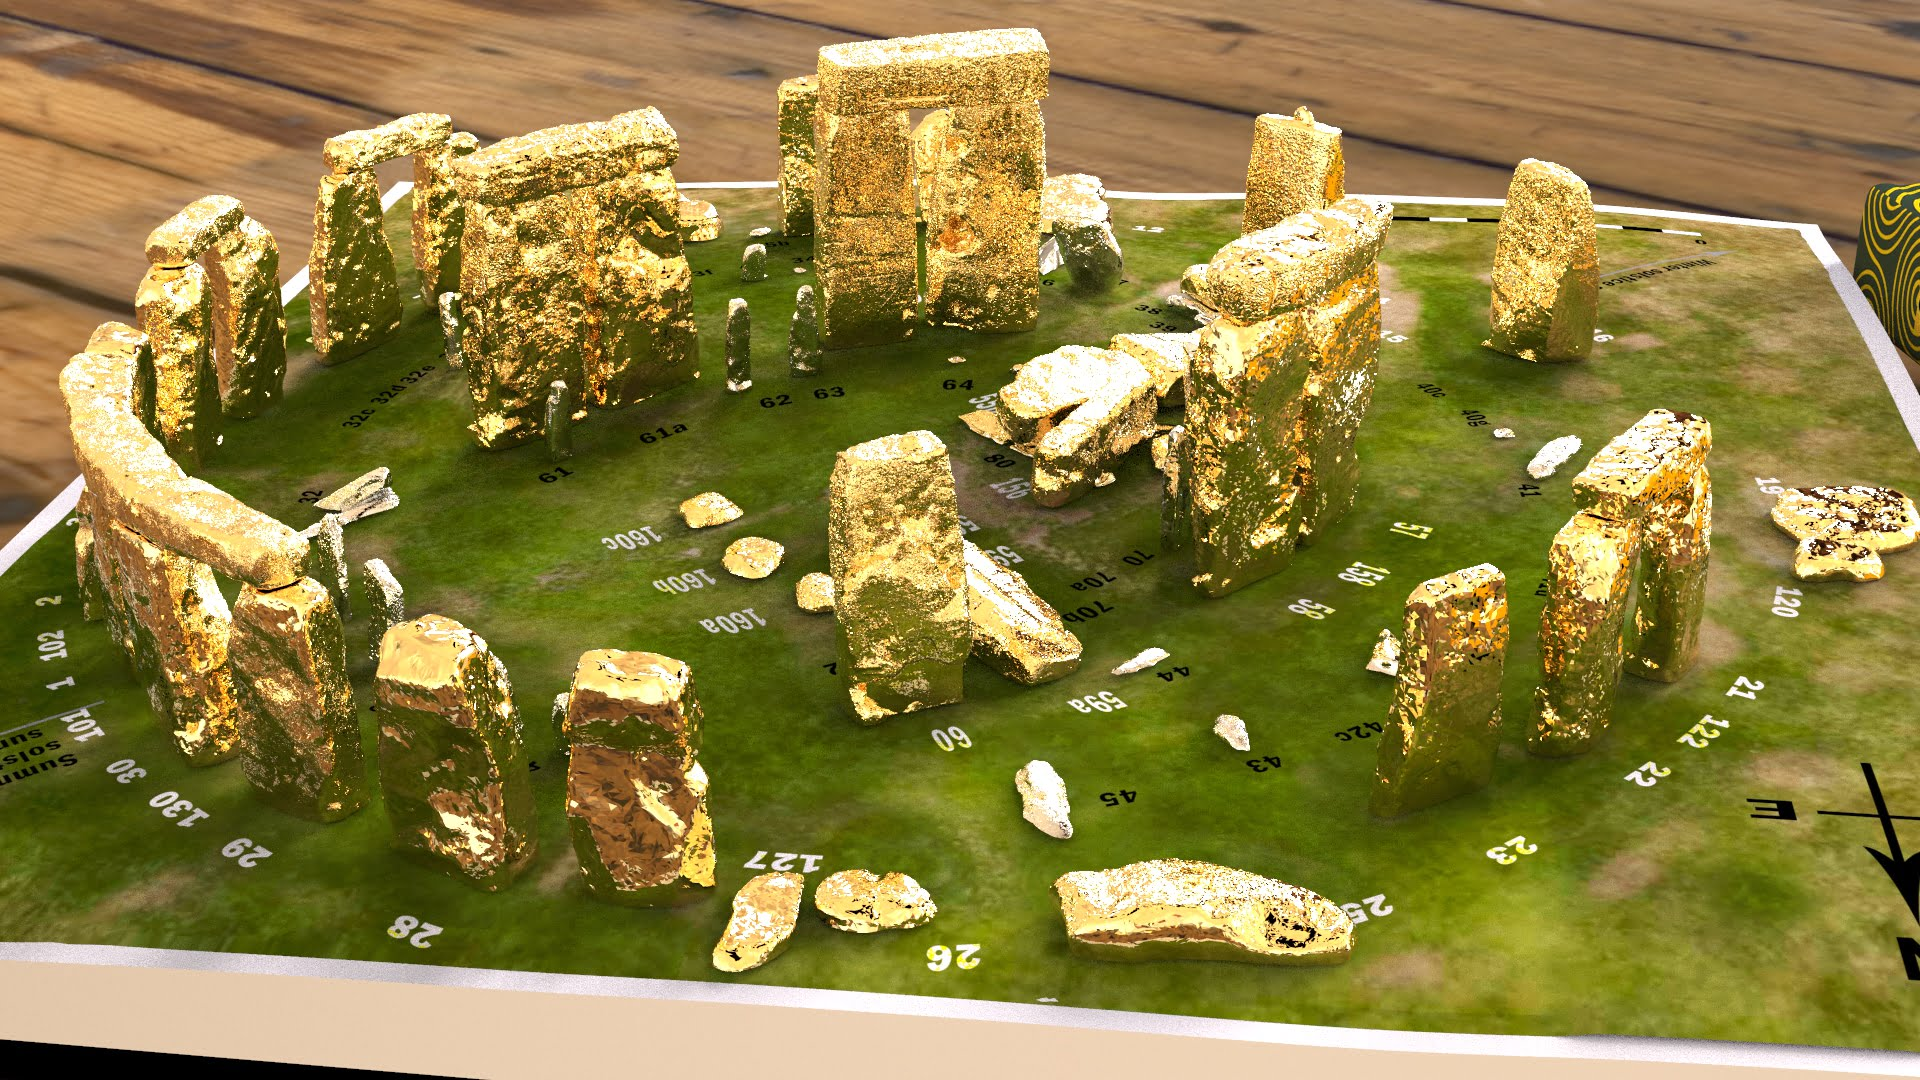 Buy Stonehenge Models: Gold sarsens and silver bluestones accurate and detailed Stonehenge model replica 002  - Full set -